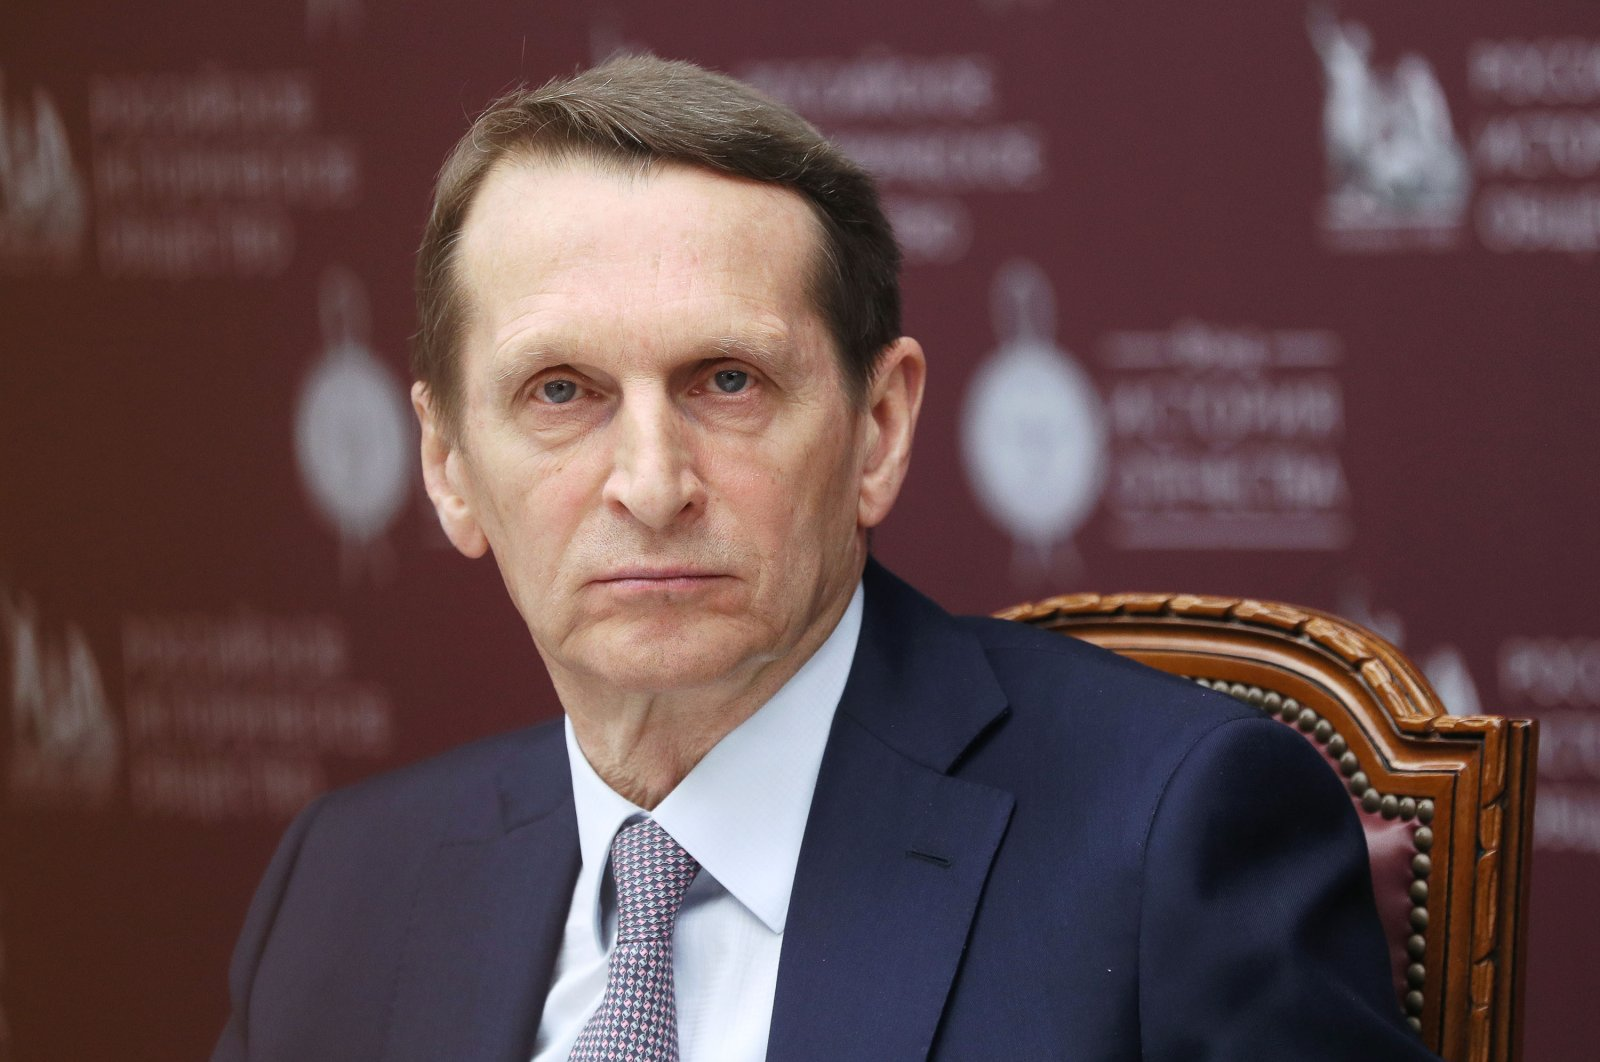 Russian Historical Society Chairperson Sergei Naryshkin attends a roundtable discussion marking 75 years since the start of the Tokyo Trial, at the offices of the Russian Historical Society, Moscow, Russia, April 20, 2021. (Reuters Photo)